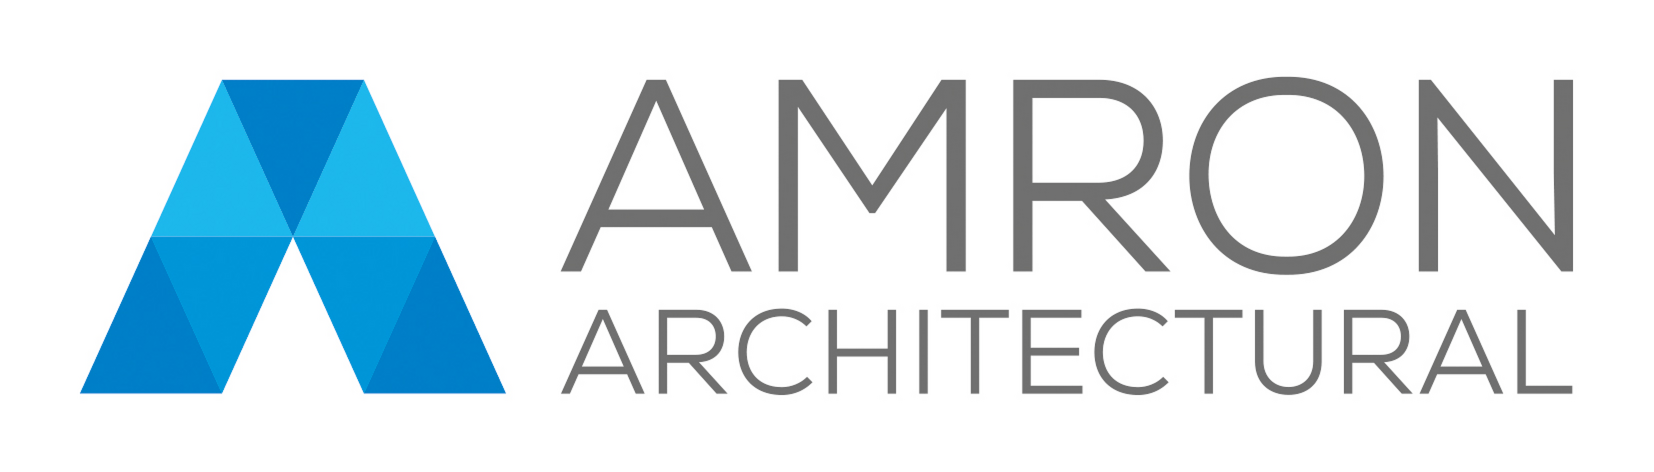 Amron Architectural